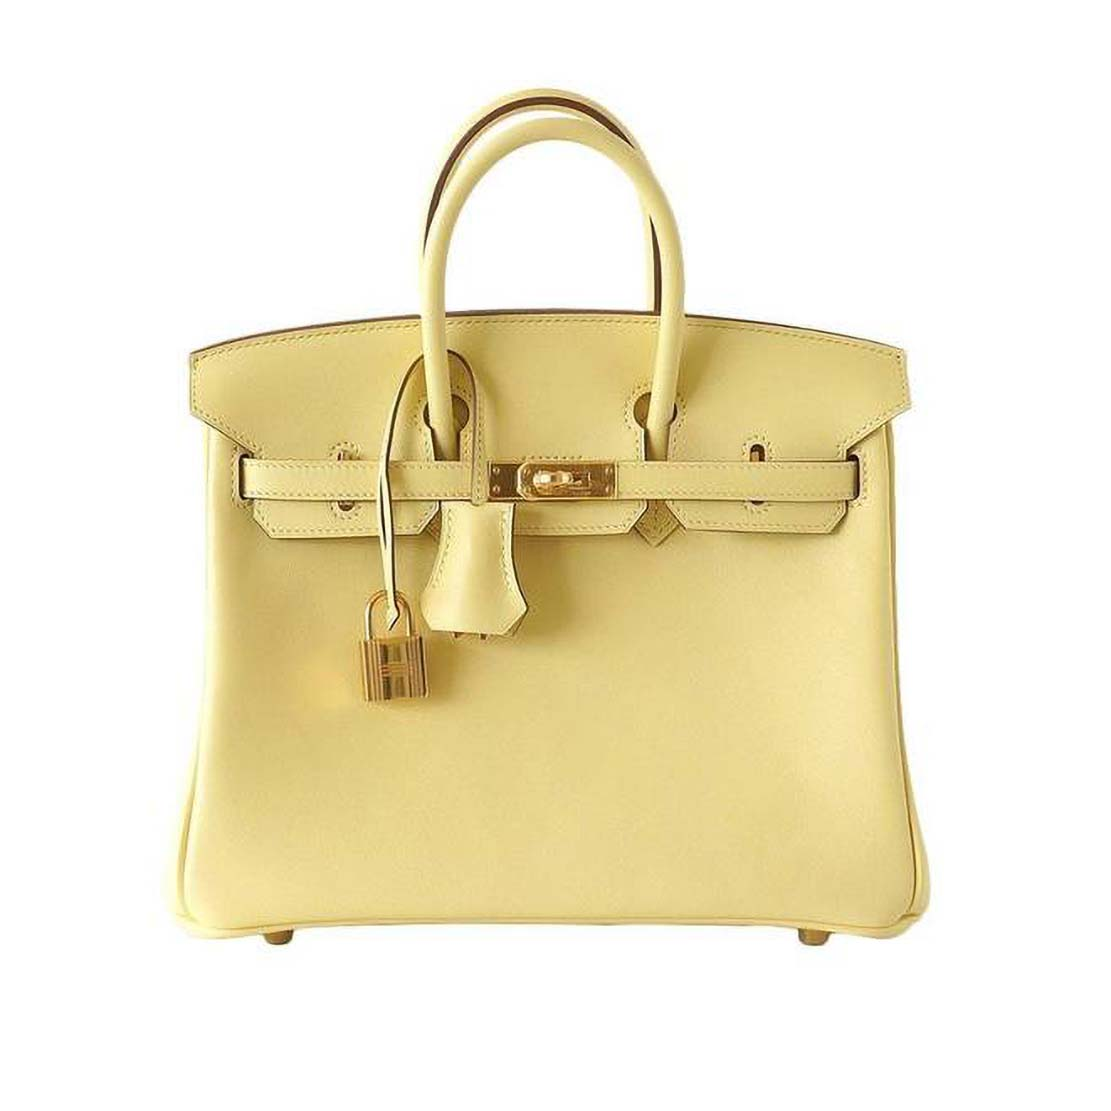 Hermes Birkin 25 Bag in Togo Leather with Gold Hardware